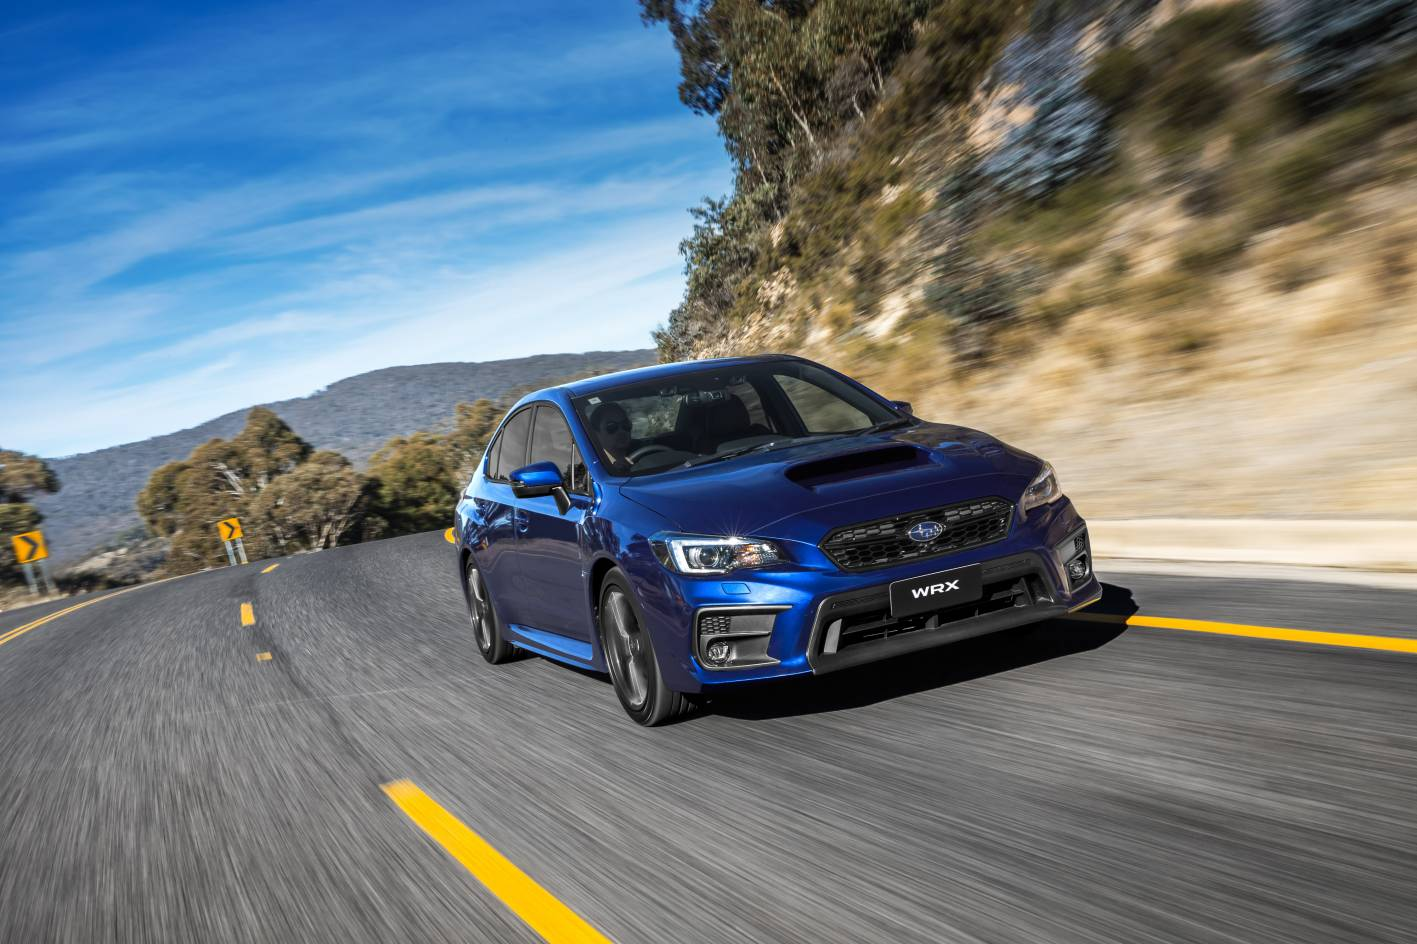 Driving a WRX like you mean it is not a punish - you could live with it every day - and it is deceptively quick